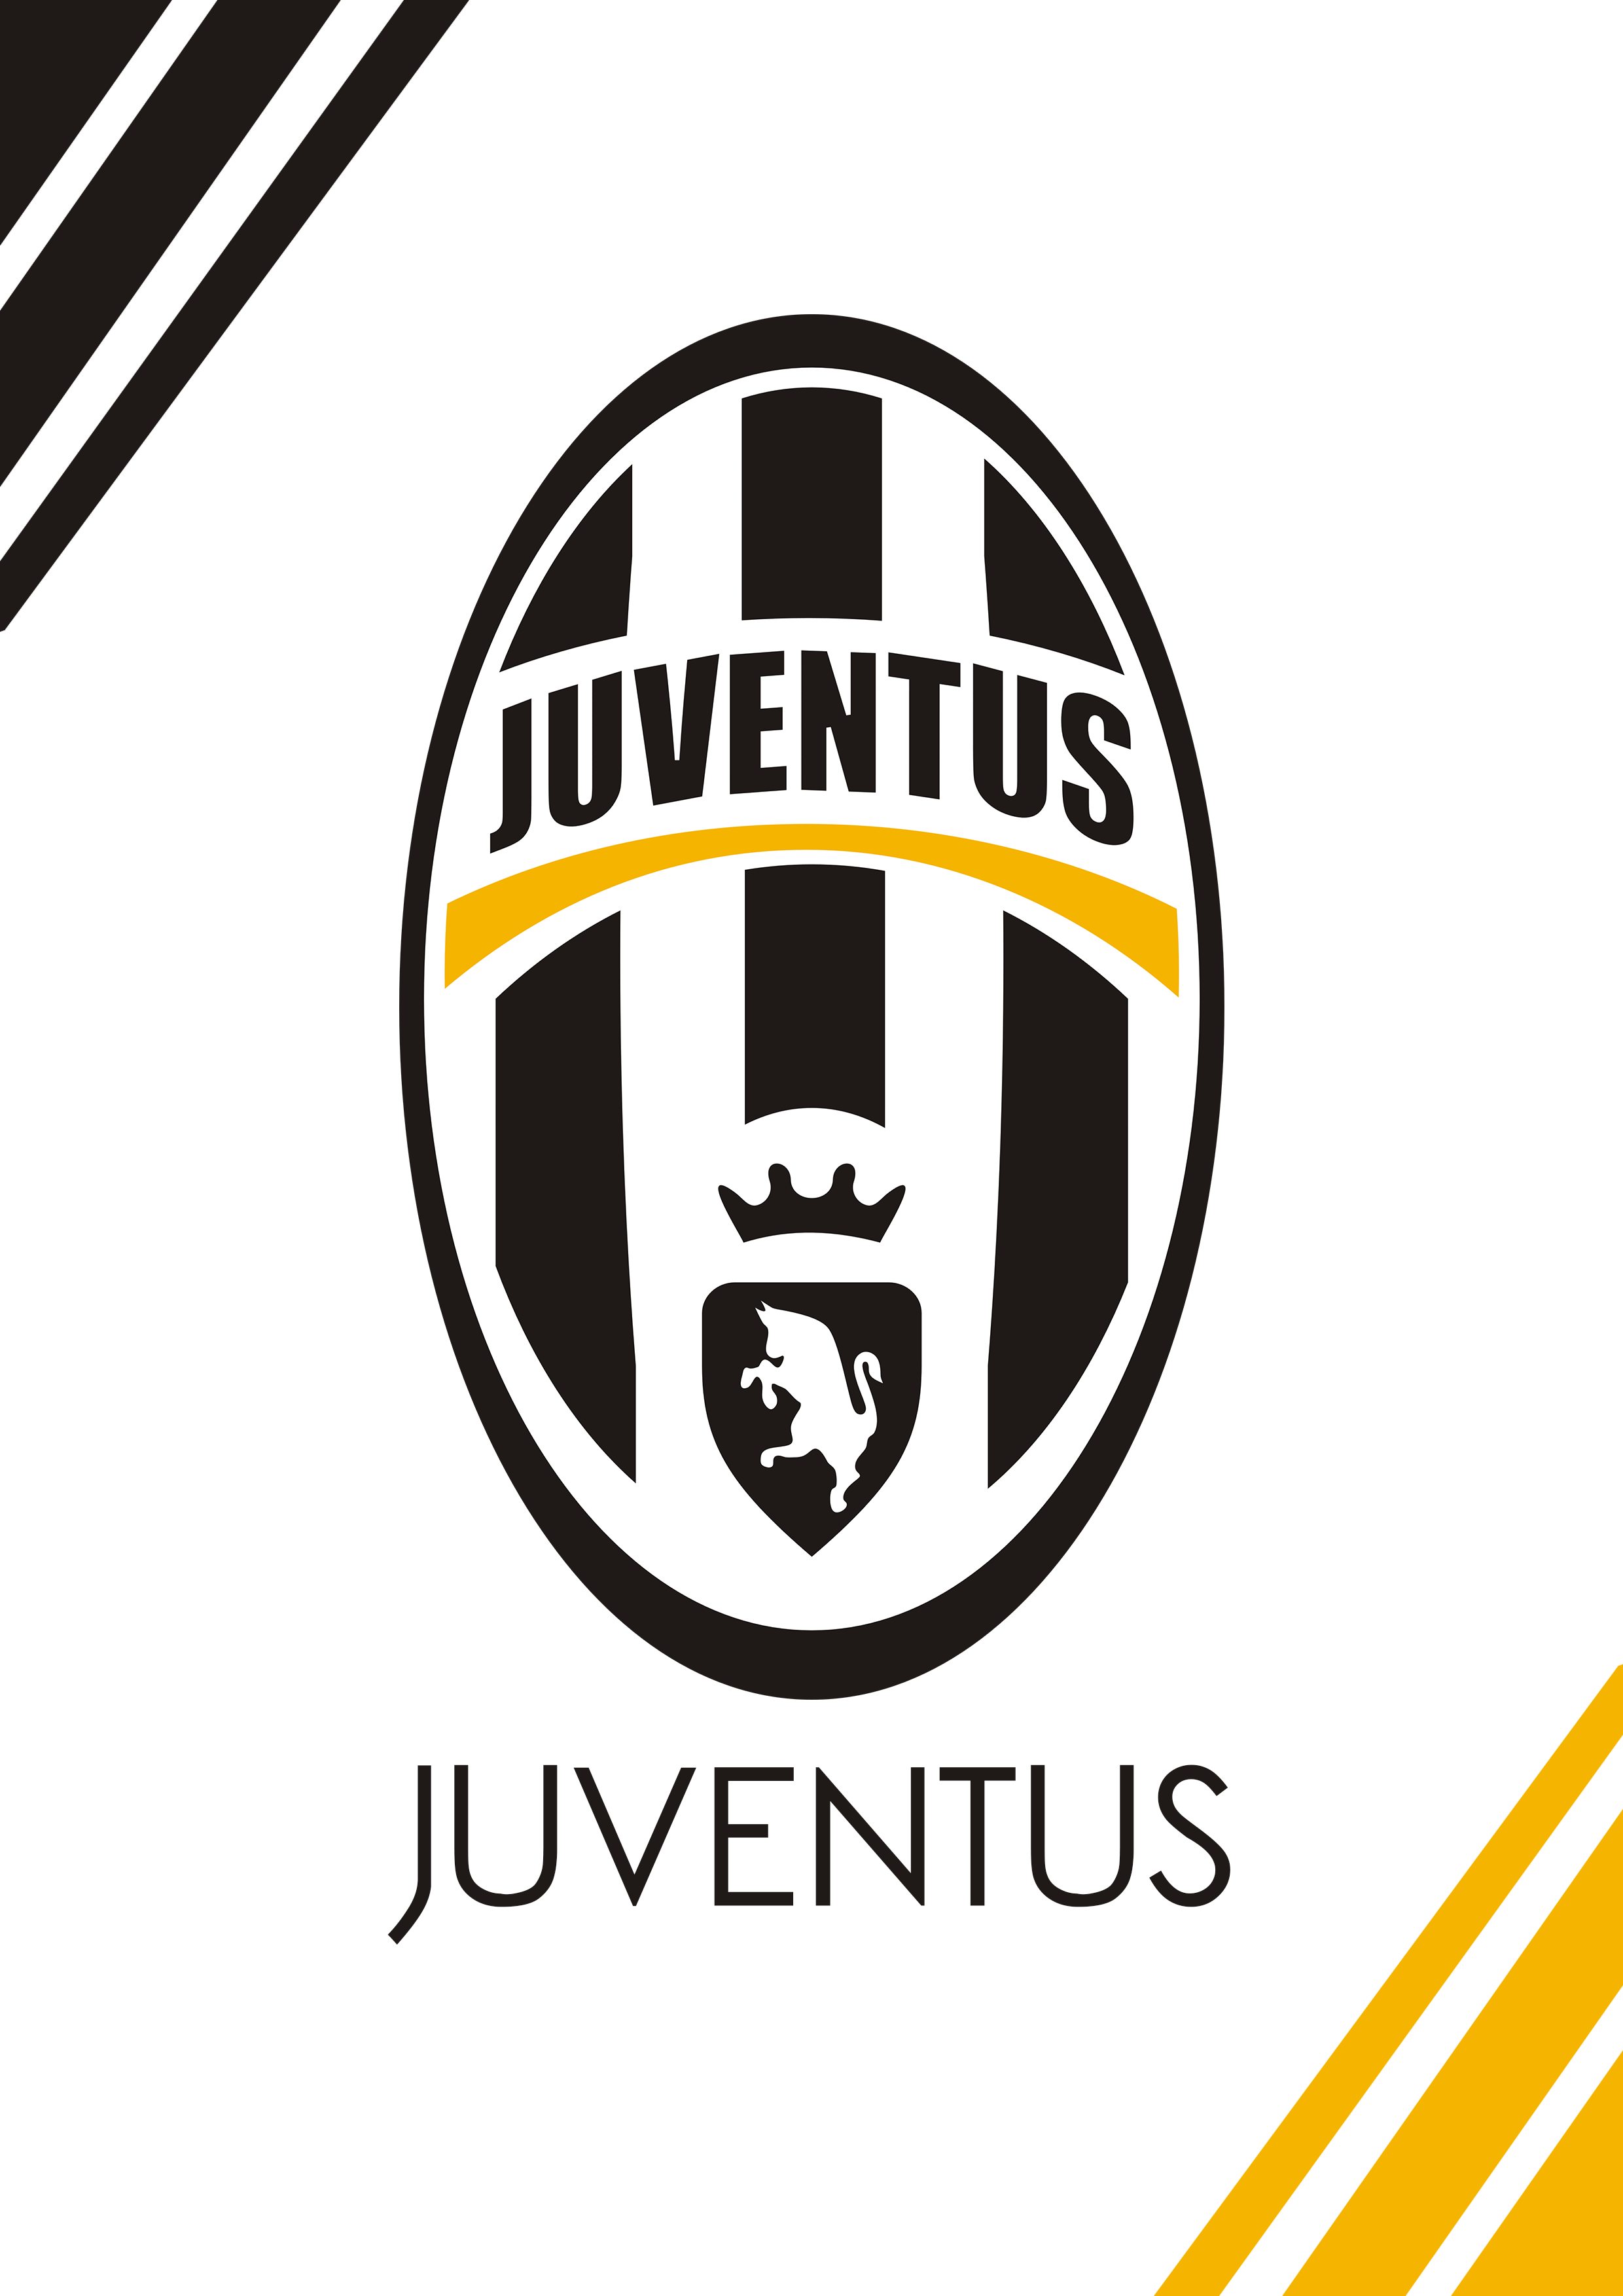 Pin By Mohamed Mohe On Sports Pinterest Football Soccer Thermos Panas Clifia 1 L Lion Star And Juventus Fc